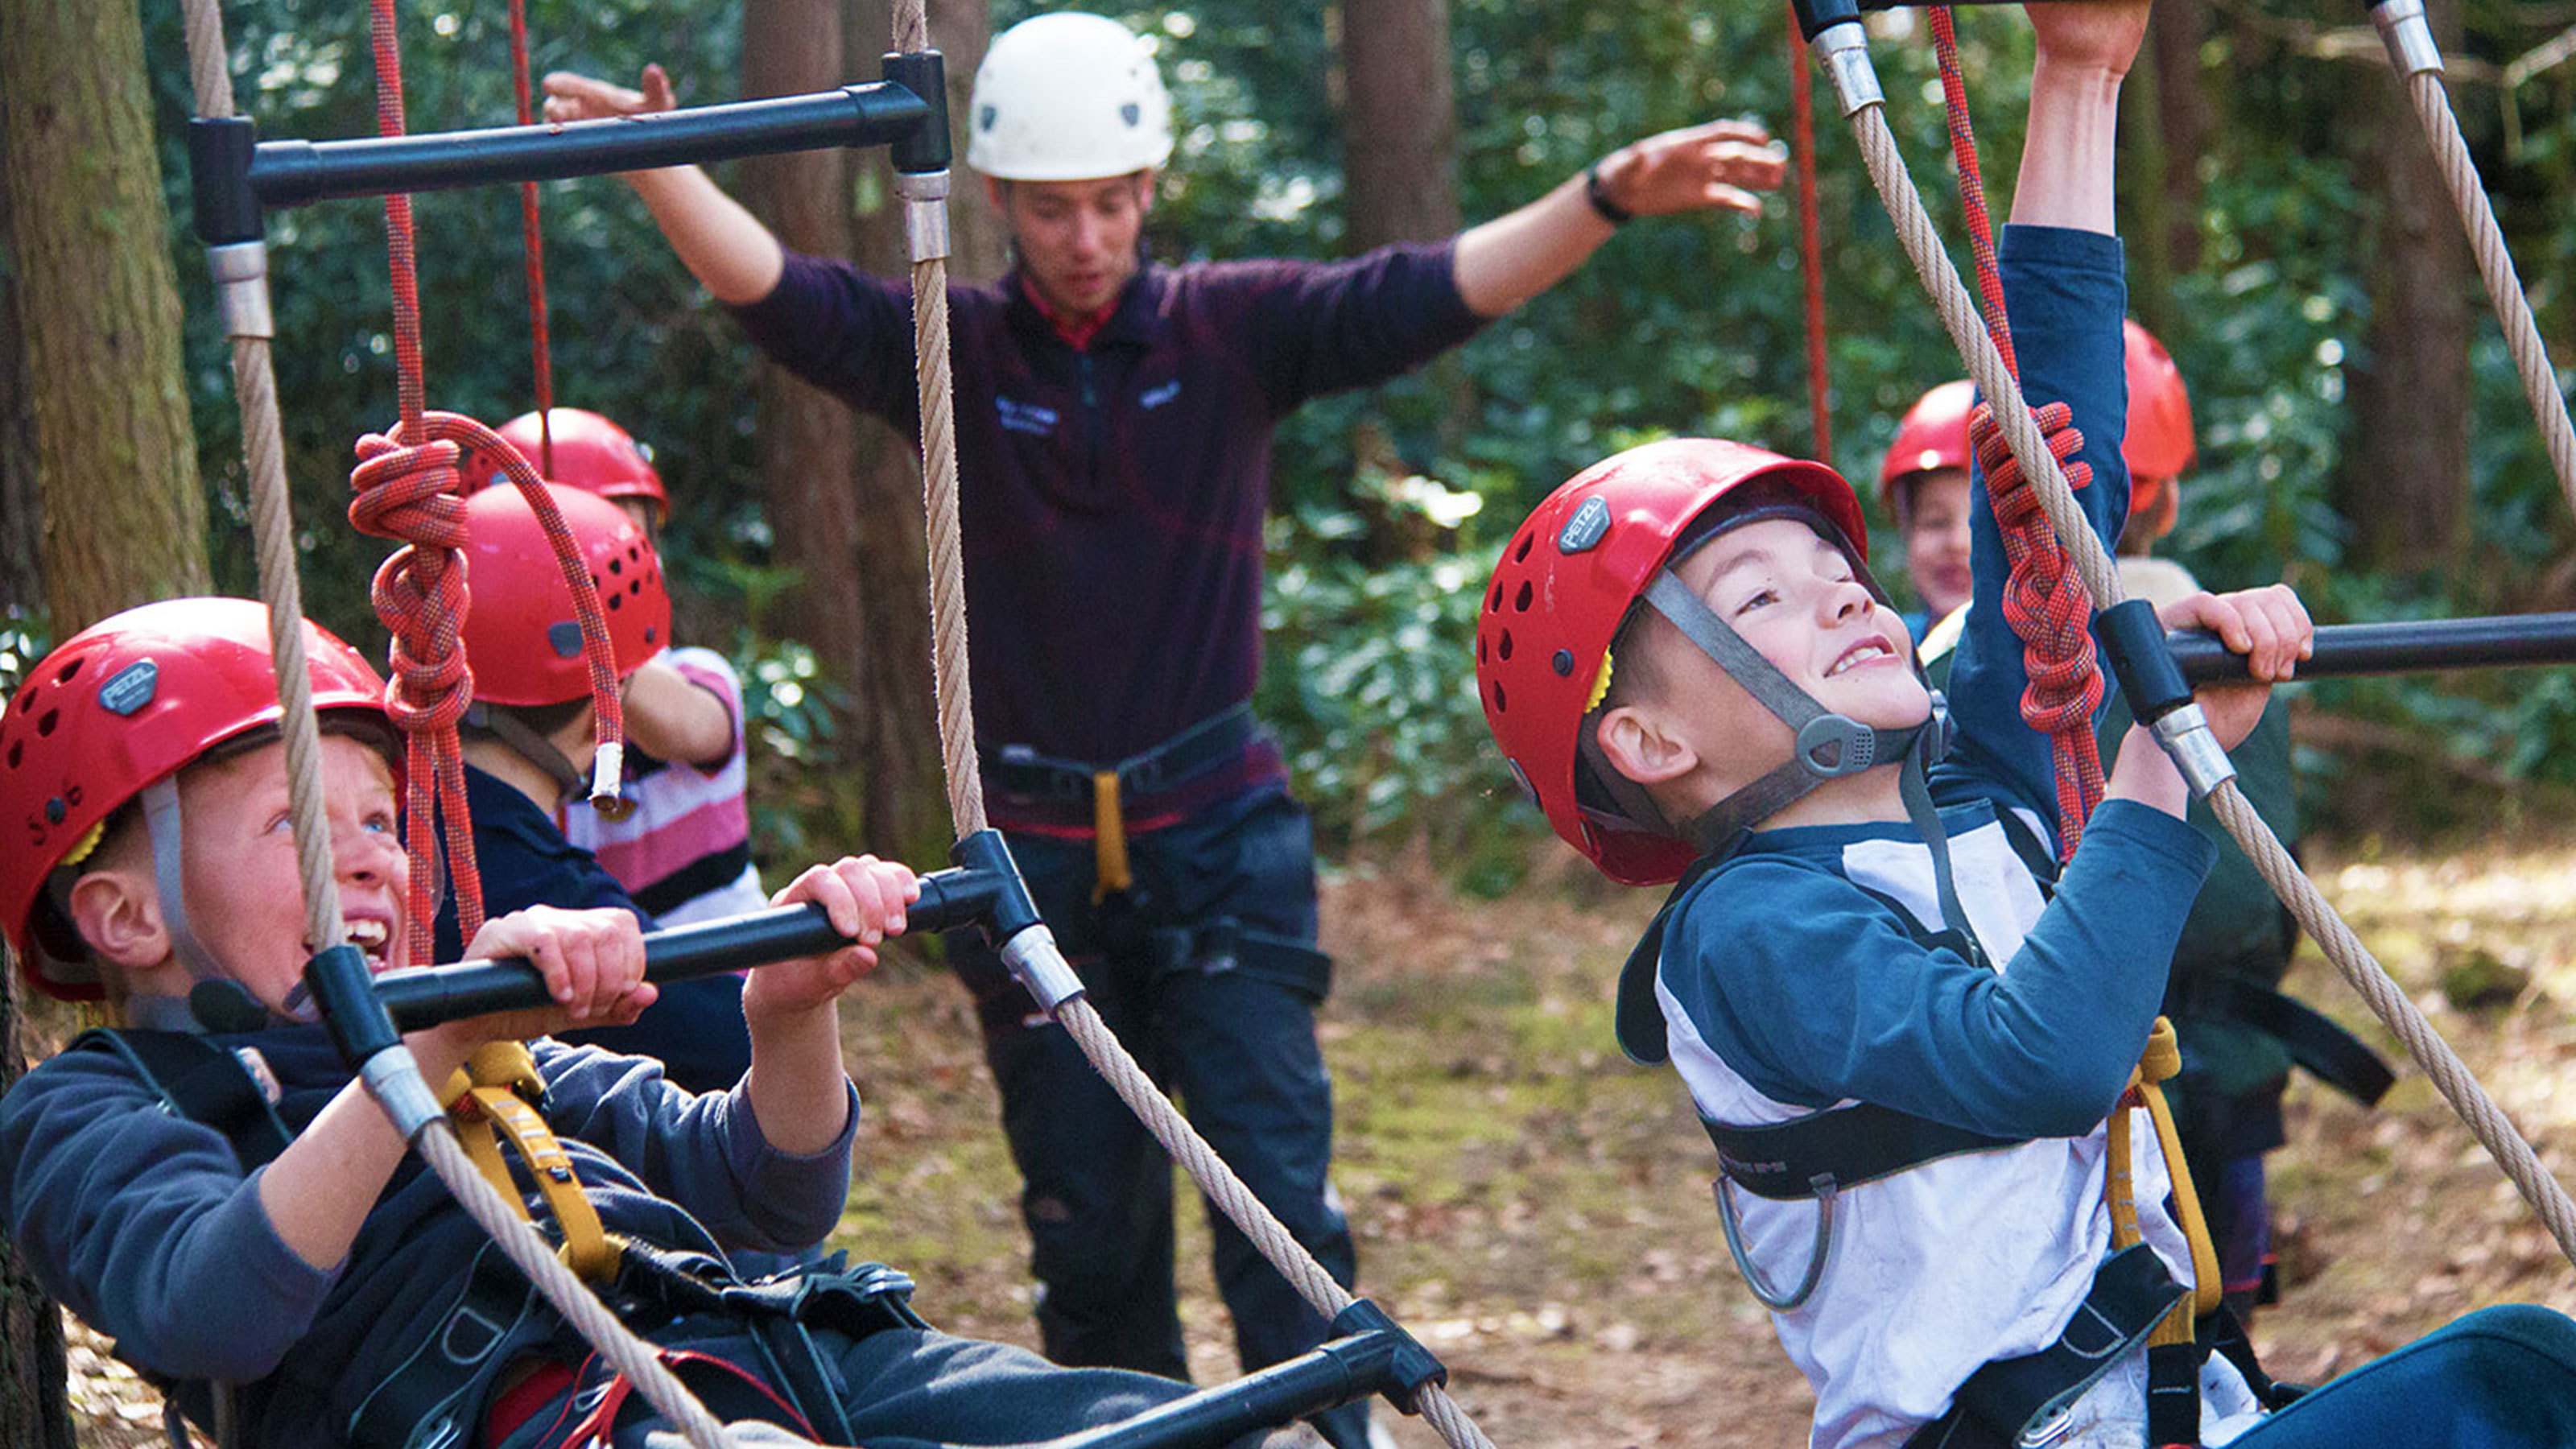 Children enjoying the High Ropes course